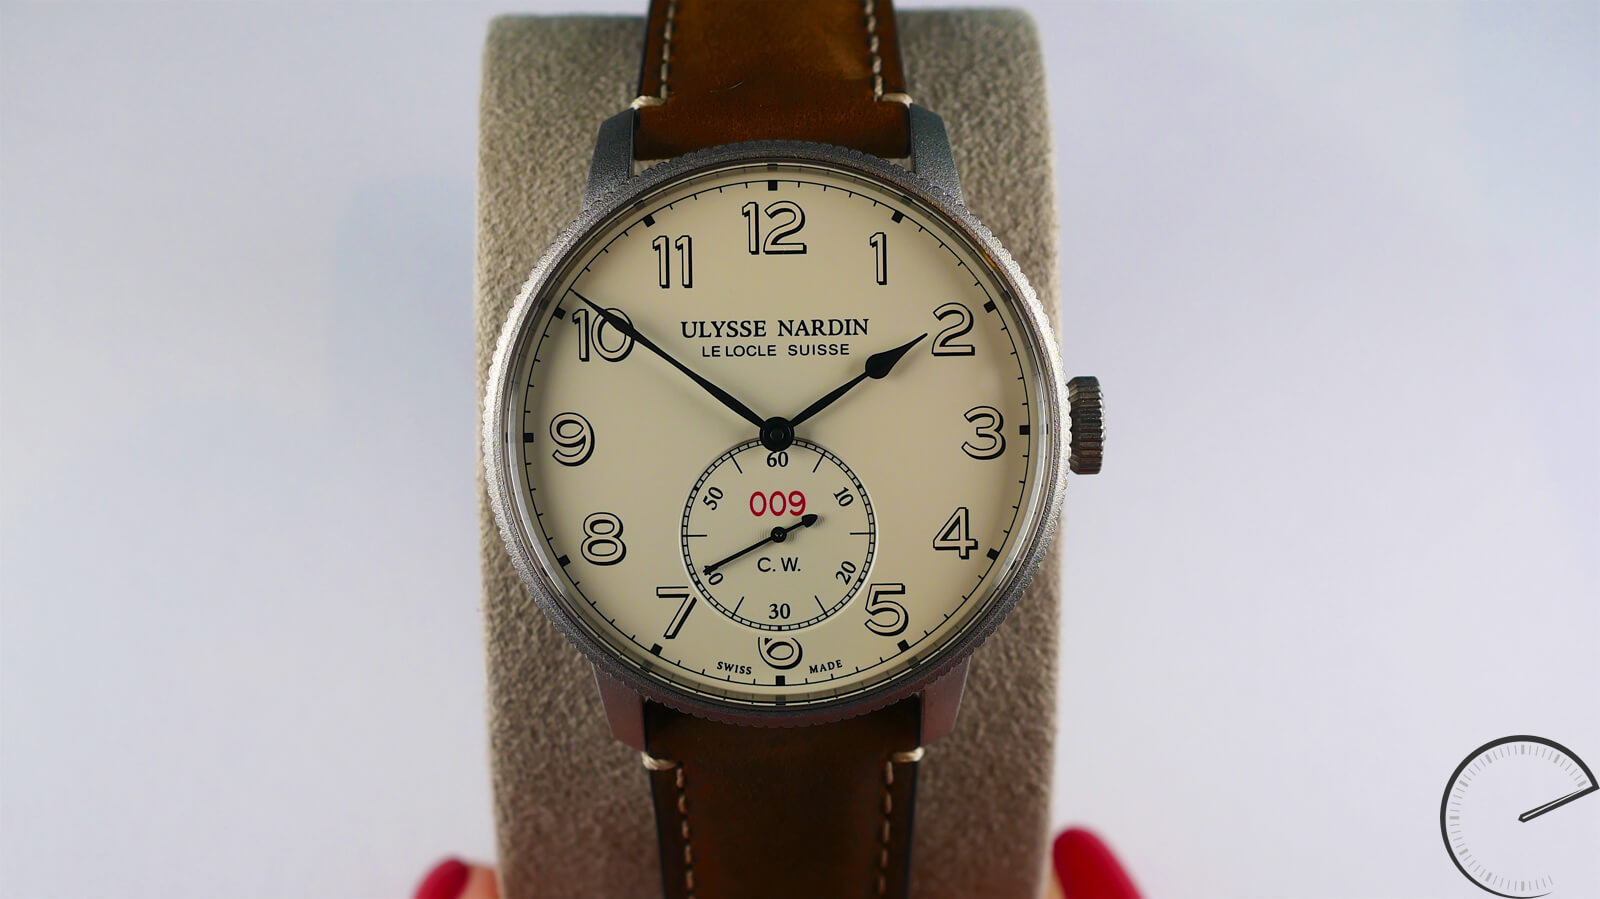 Ulysse Nardin Marine Torpilleur Military - chronometer (COSC) with movement featuring silicon hairspring